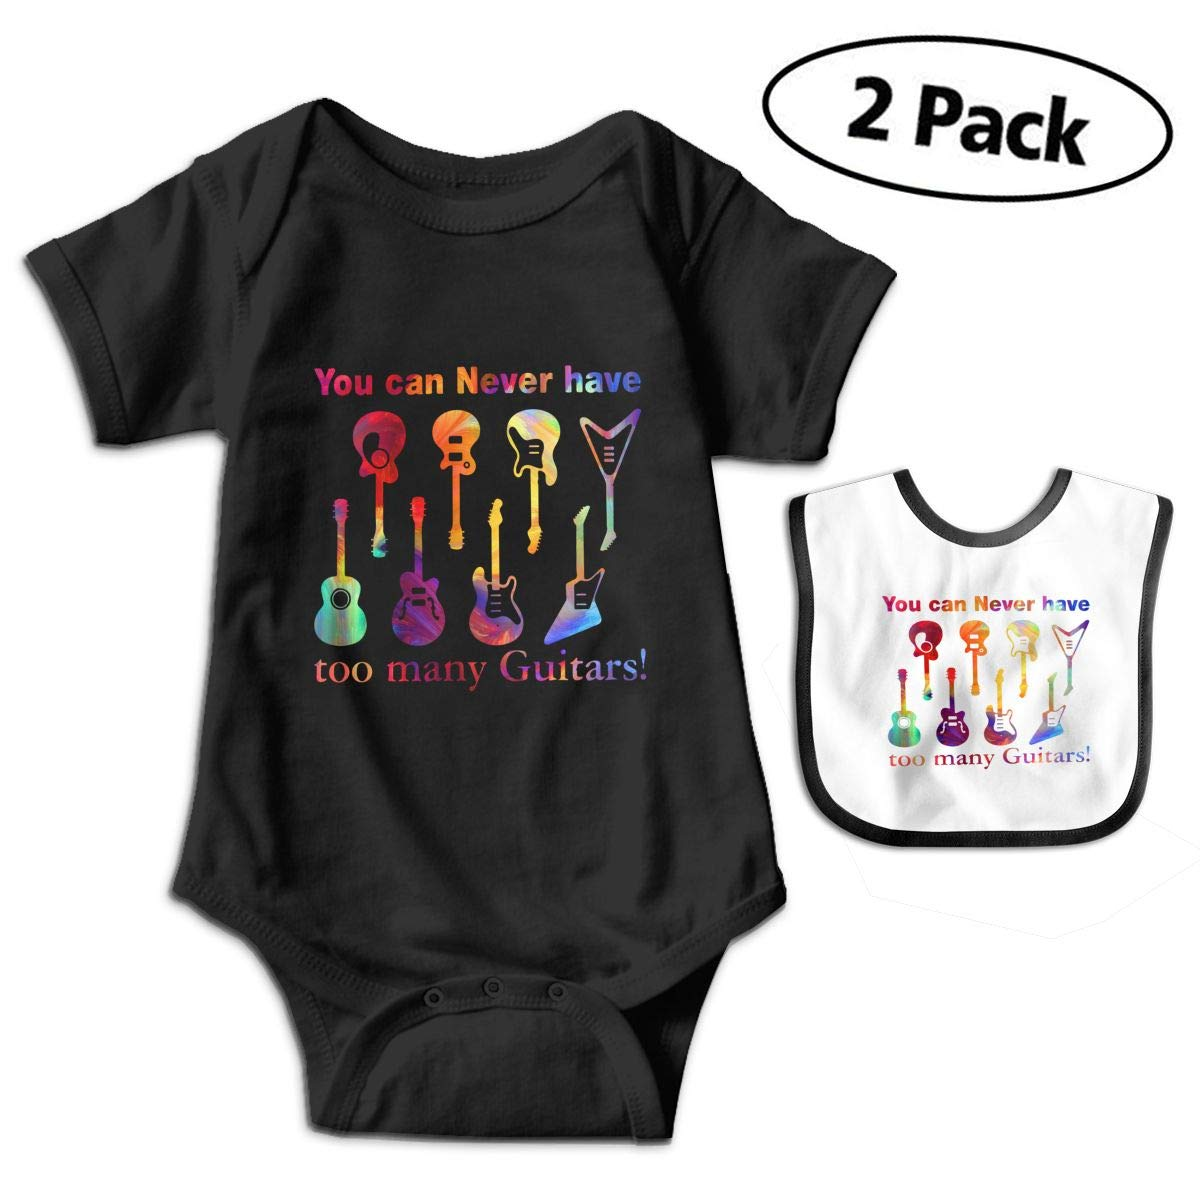 You Can Never Have Too Many Guitars Infant Baby Boys Girls Short Sleeve Romper Bodysuit Outfit Clothes